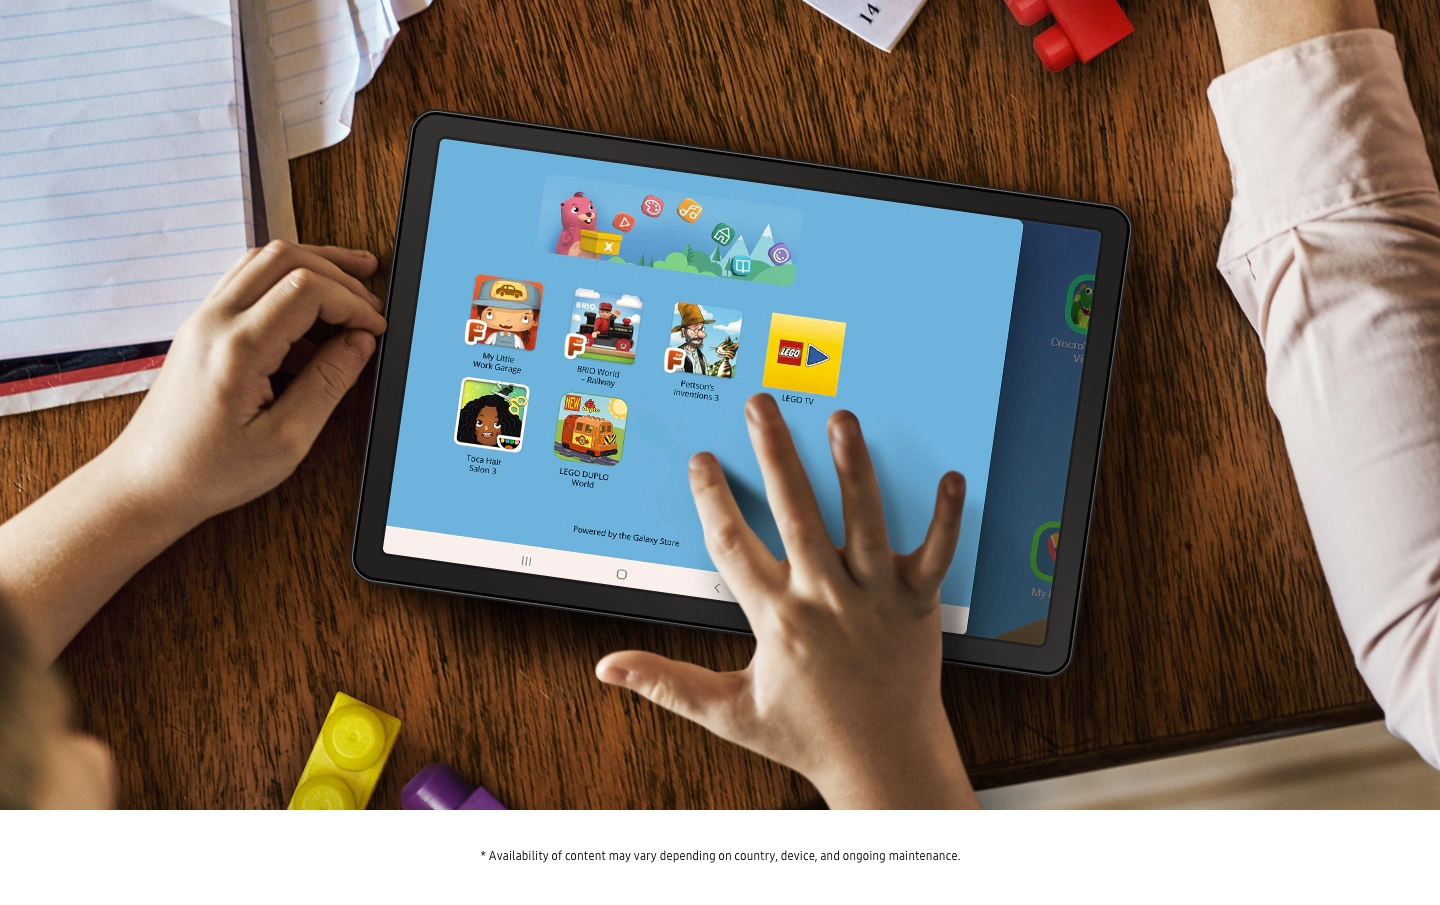 Simulated image of a tablet on a table surrounded by papers and LEGO blocks. A child's hands are nearby and their right hand is touching the tablet screen. Onscreen is the LEGO App UI, showing different kinds of entertainment your child can experience.